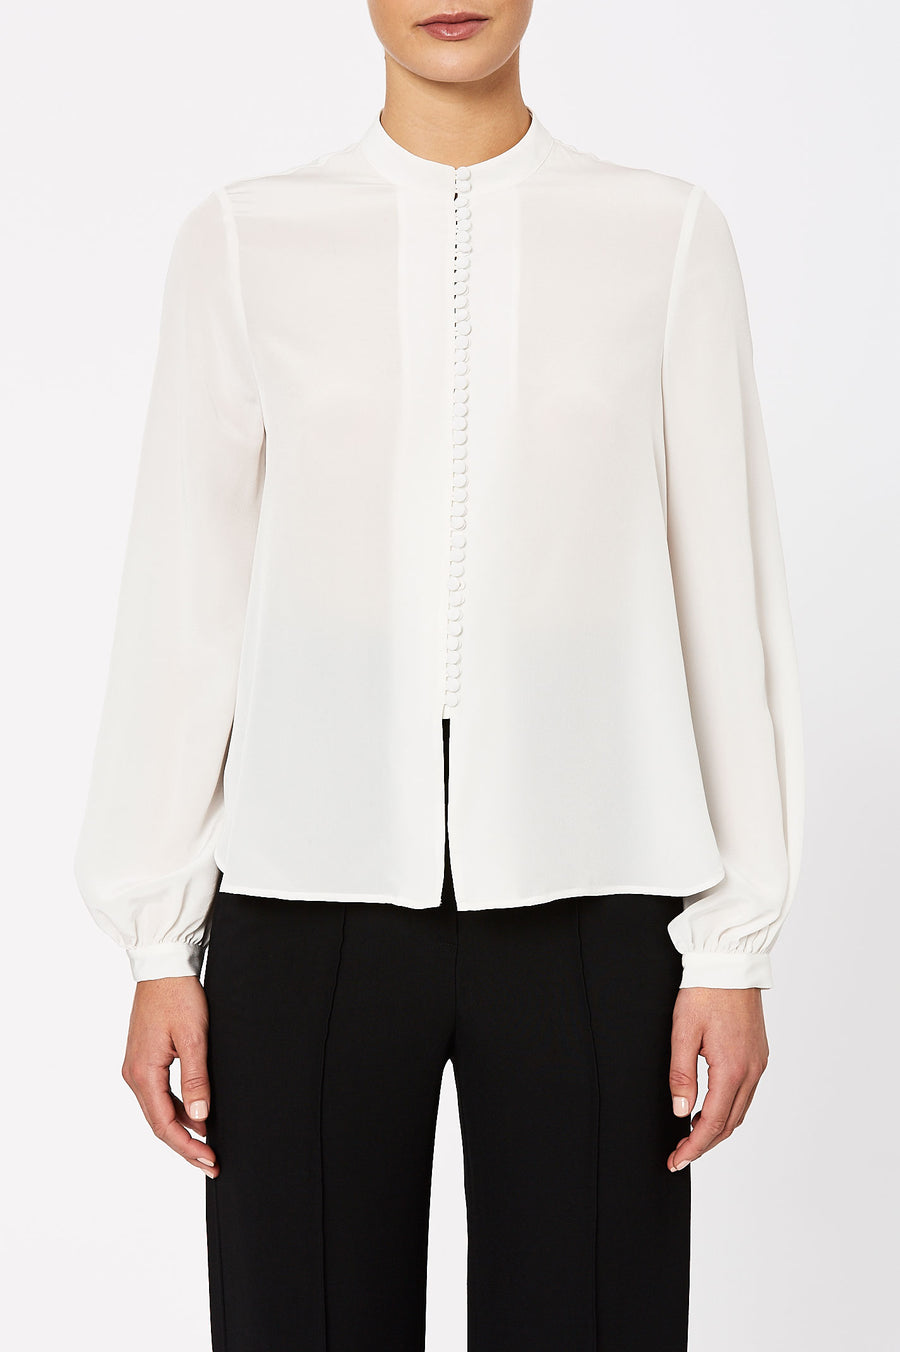 Cut from a luxurious silk, the long sleeved blouse features buttons cascading down from the neckline and long blouson sleeves.